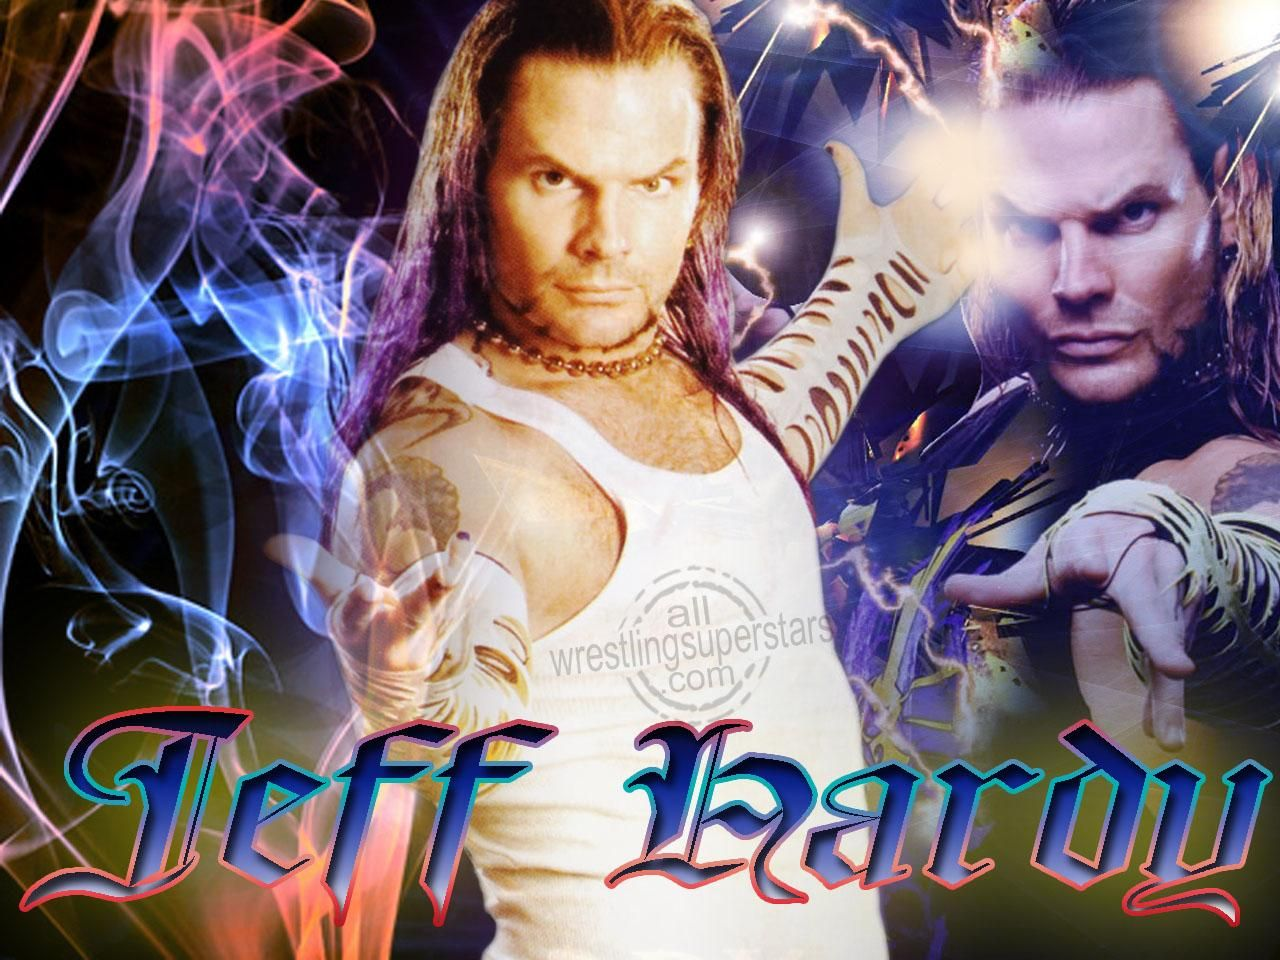 Jeff hardy wallpapers wallpaper 1024768 hardy boyz wallpapers 42 jeff hardy wallpapers wallpaper 1024768 hardy boyz wallpapers 42 wallpapers adorable voltagebd Image collections